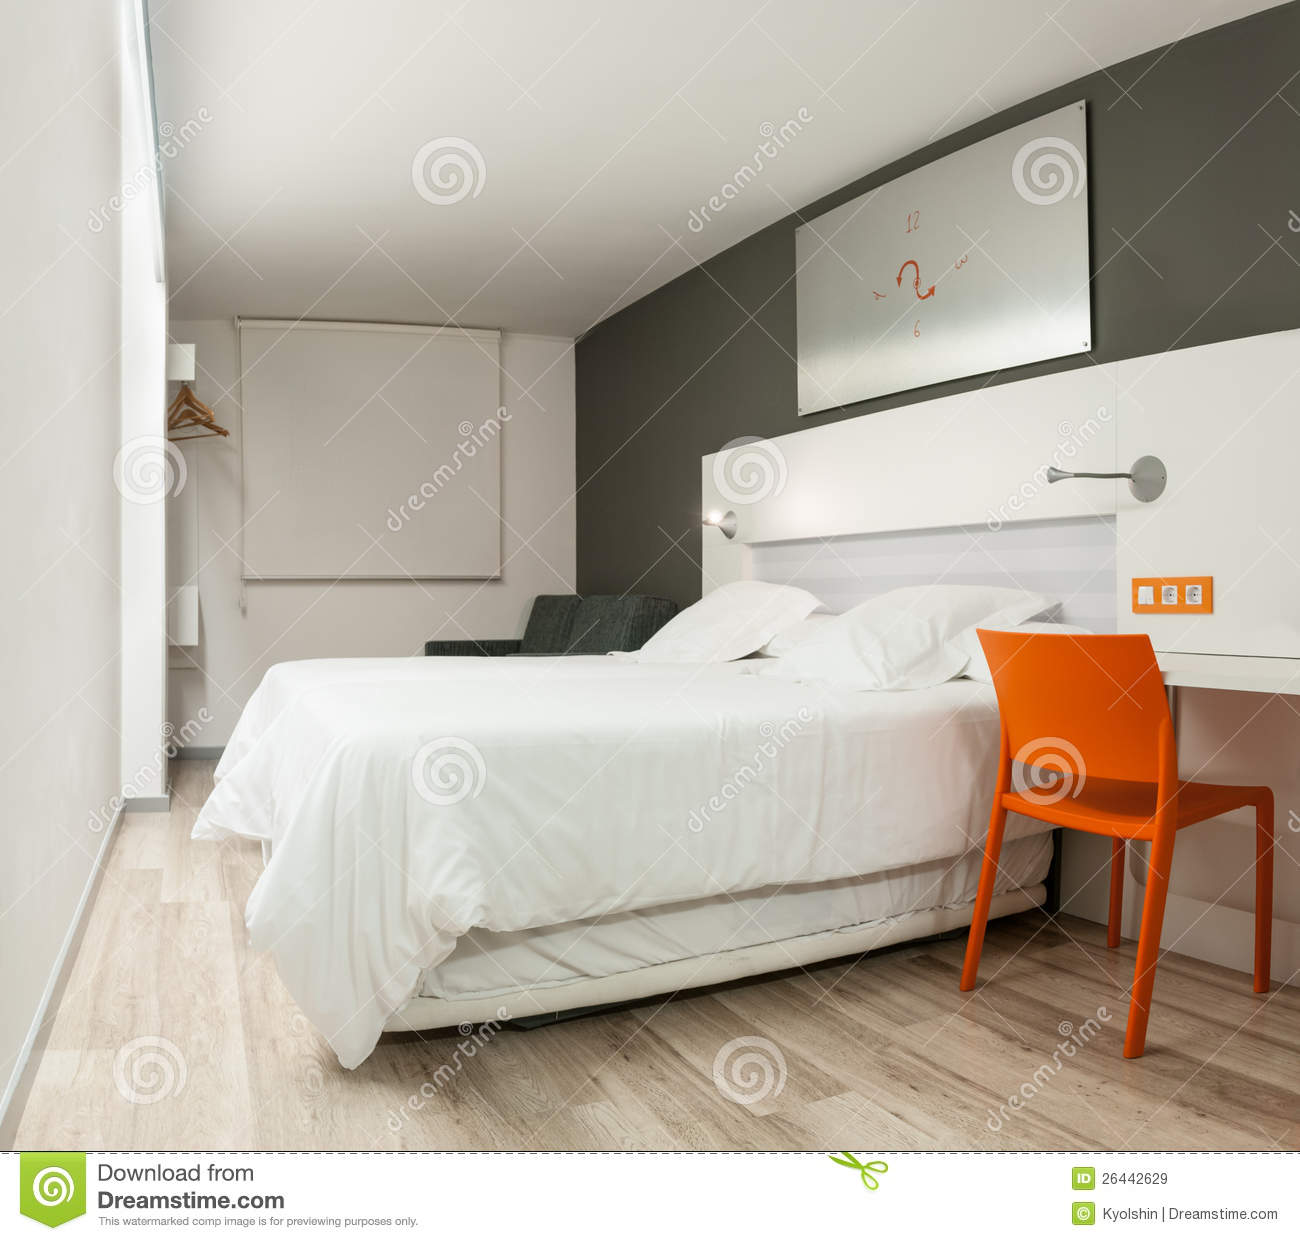 Modern Hotel Room modern hotel room design stock photo - image: 59224127